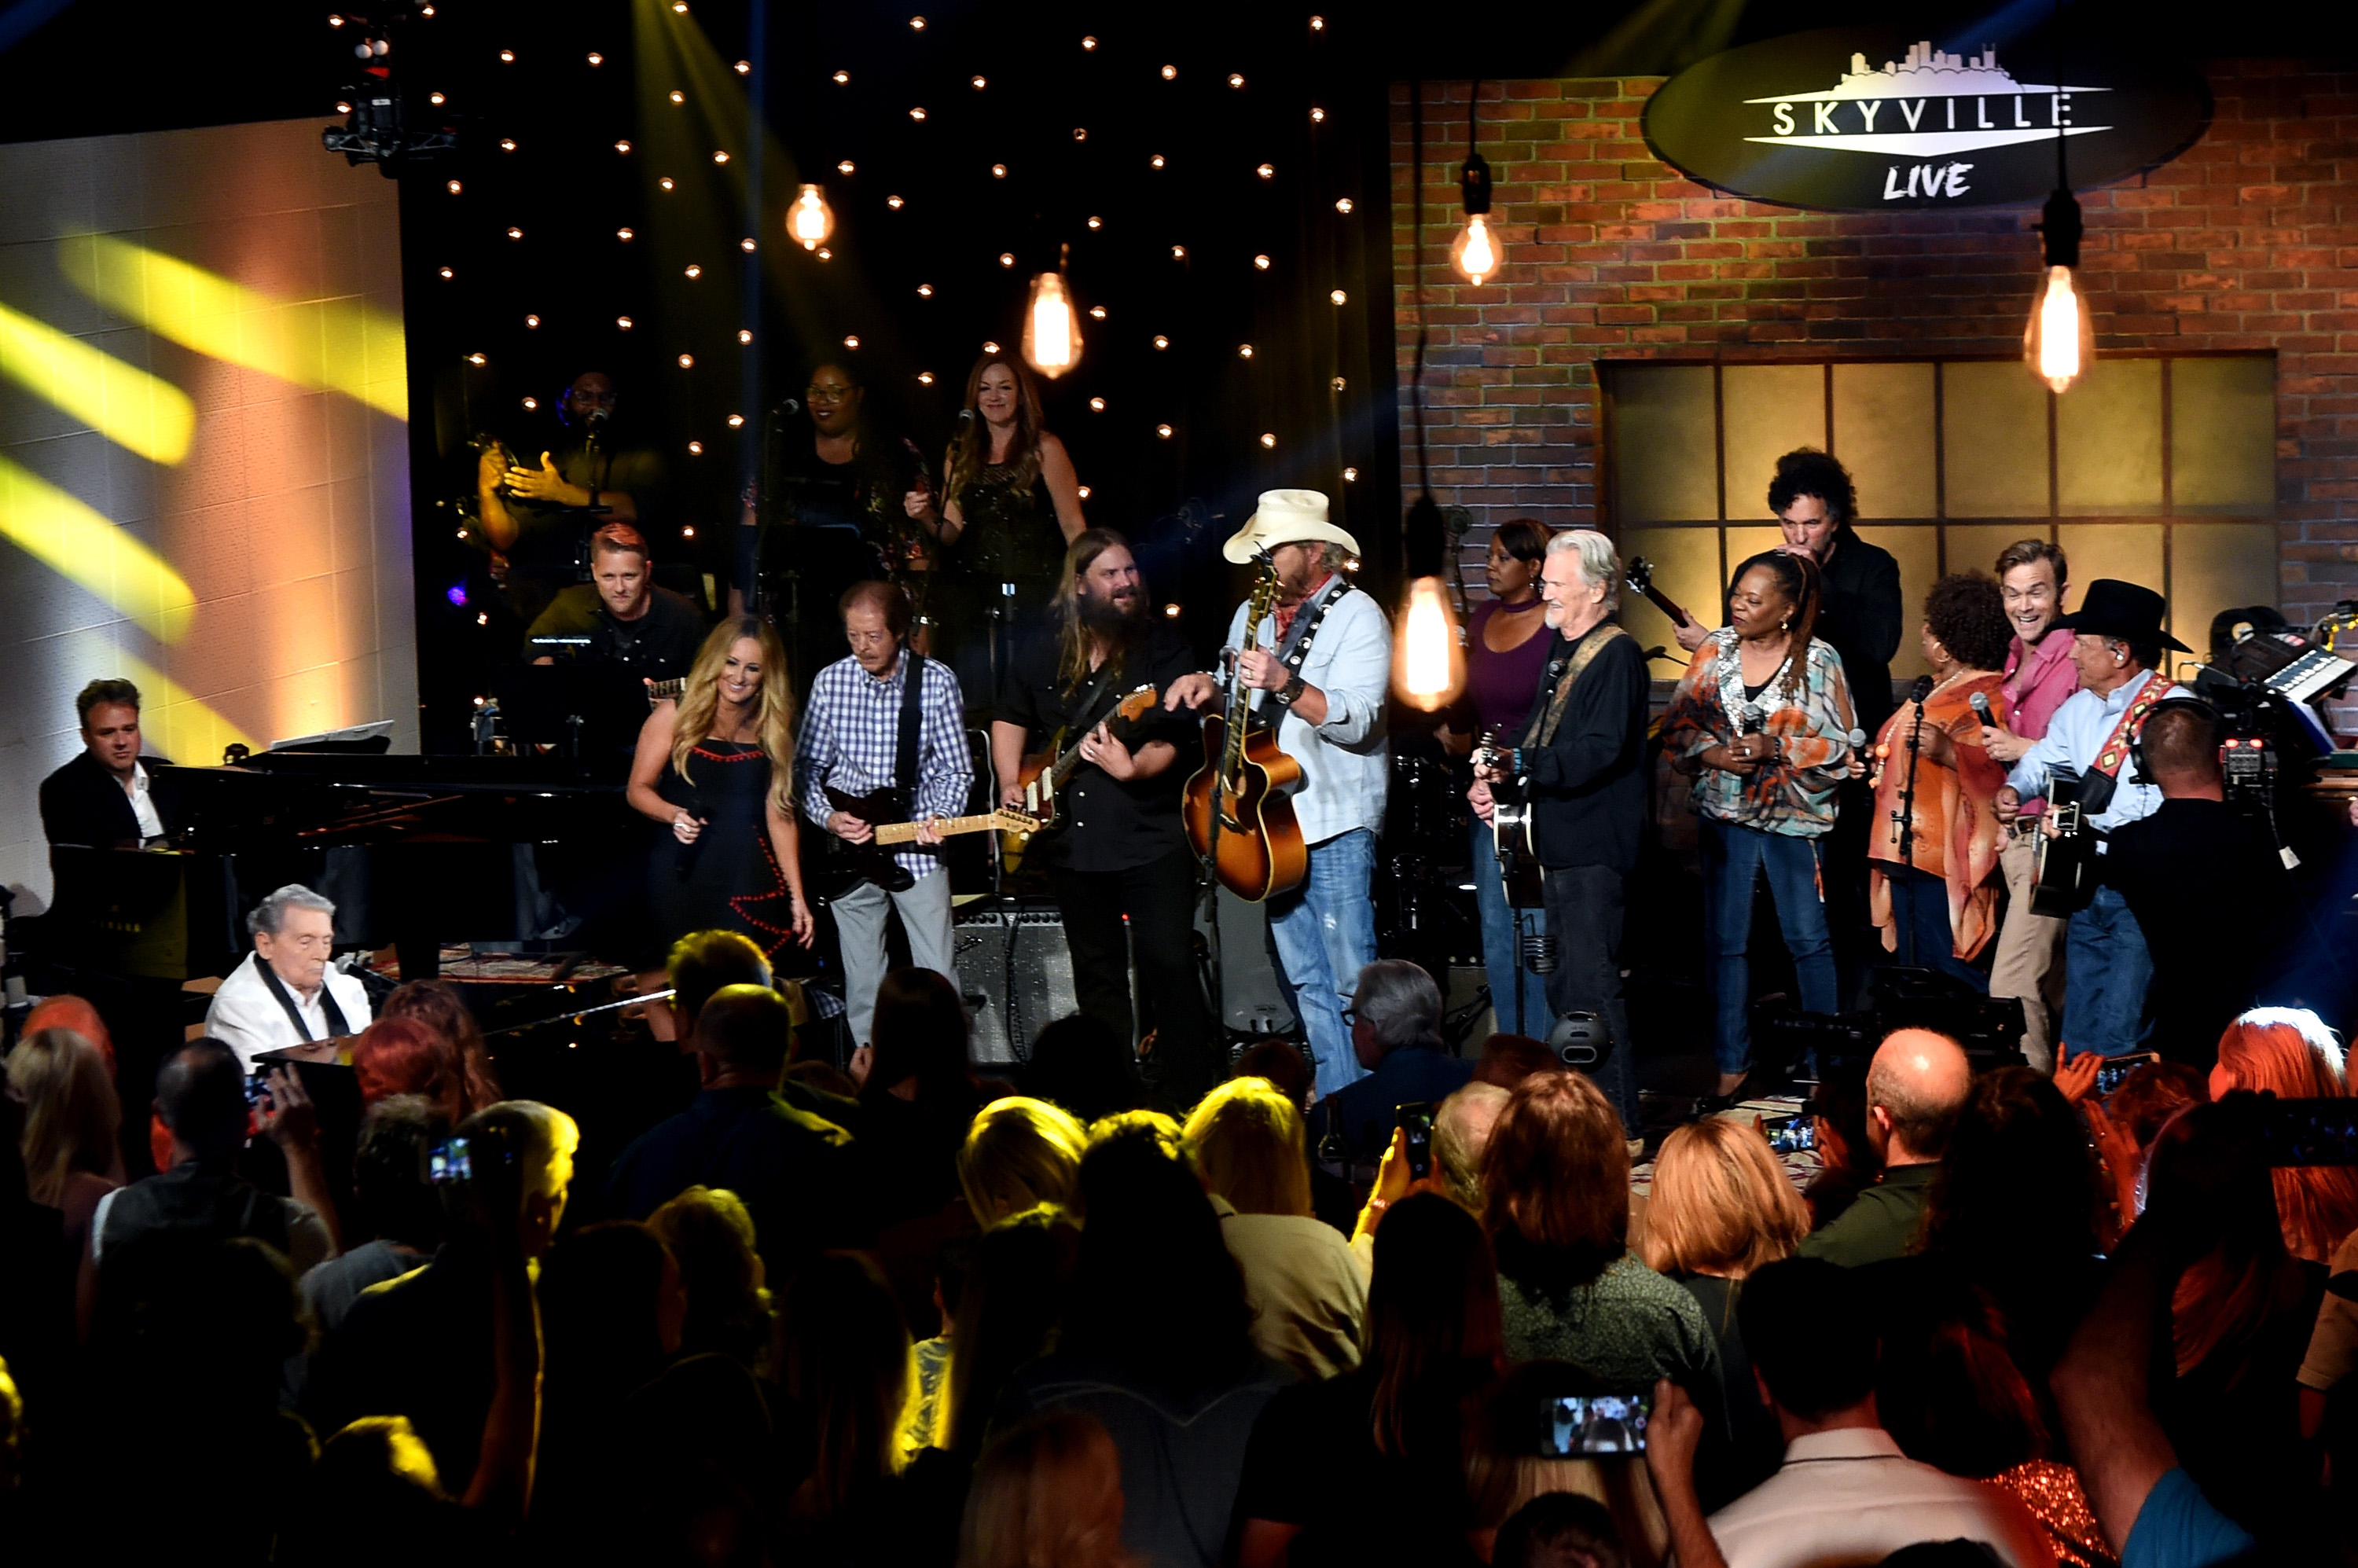 Jerry Lee Lewis, Lee Ann Womack, Chris Stapleton, Toby Keith, Kris Kristofferson, Waylon Payne, and George Strait; Photo by Rick Diamond/Getty Images for Skyville